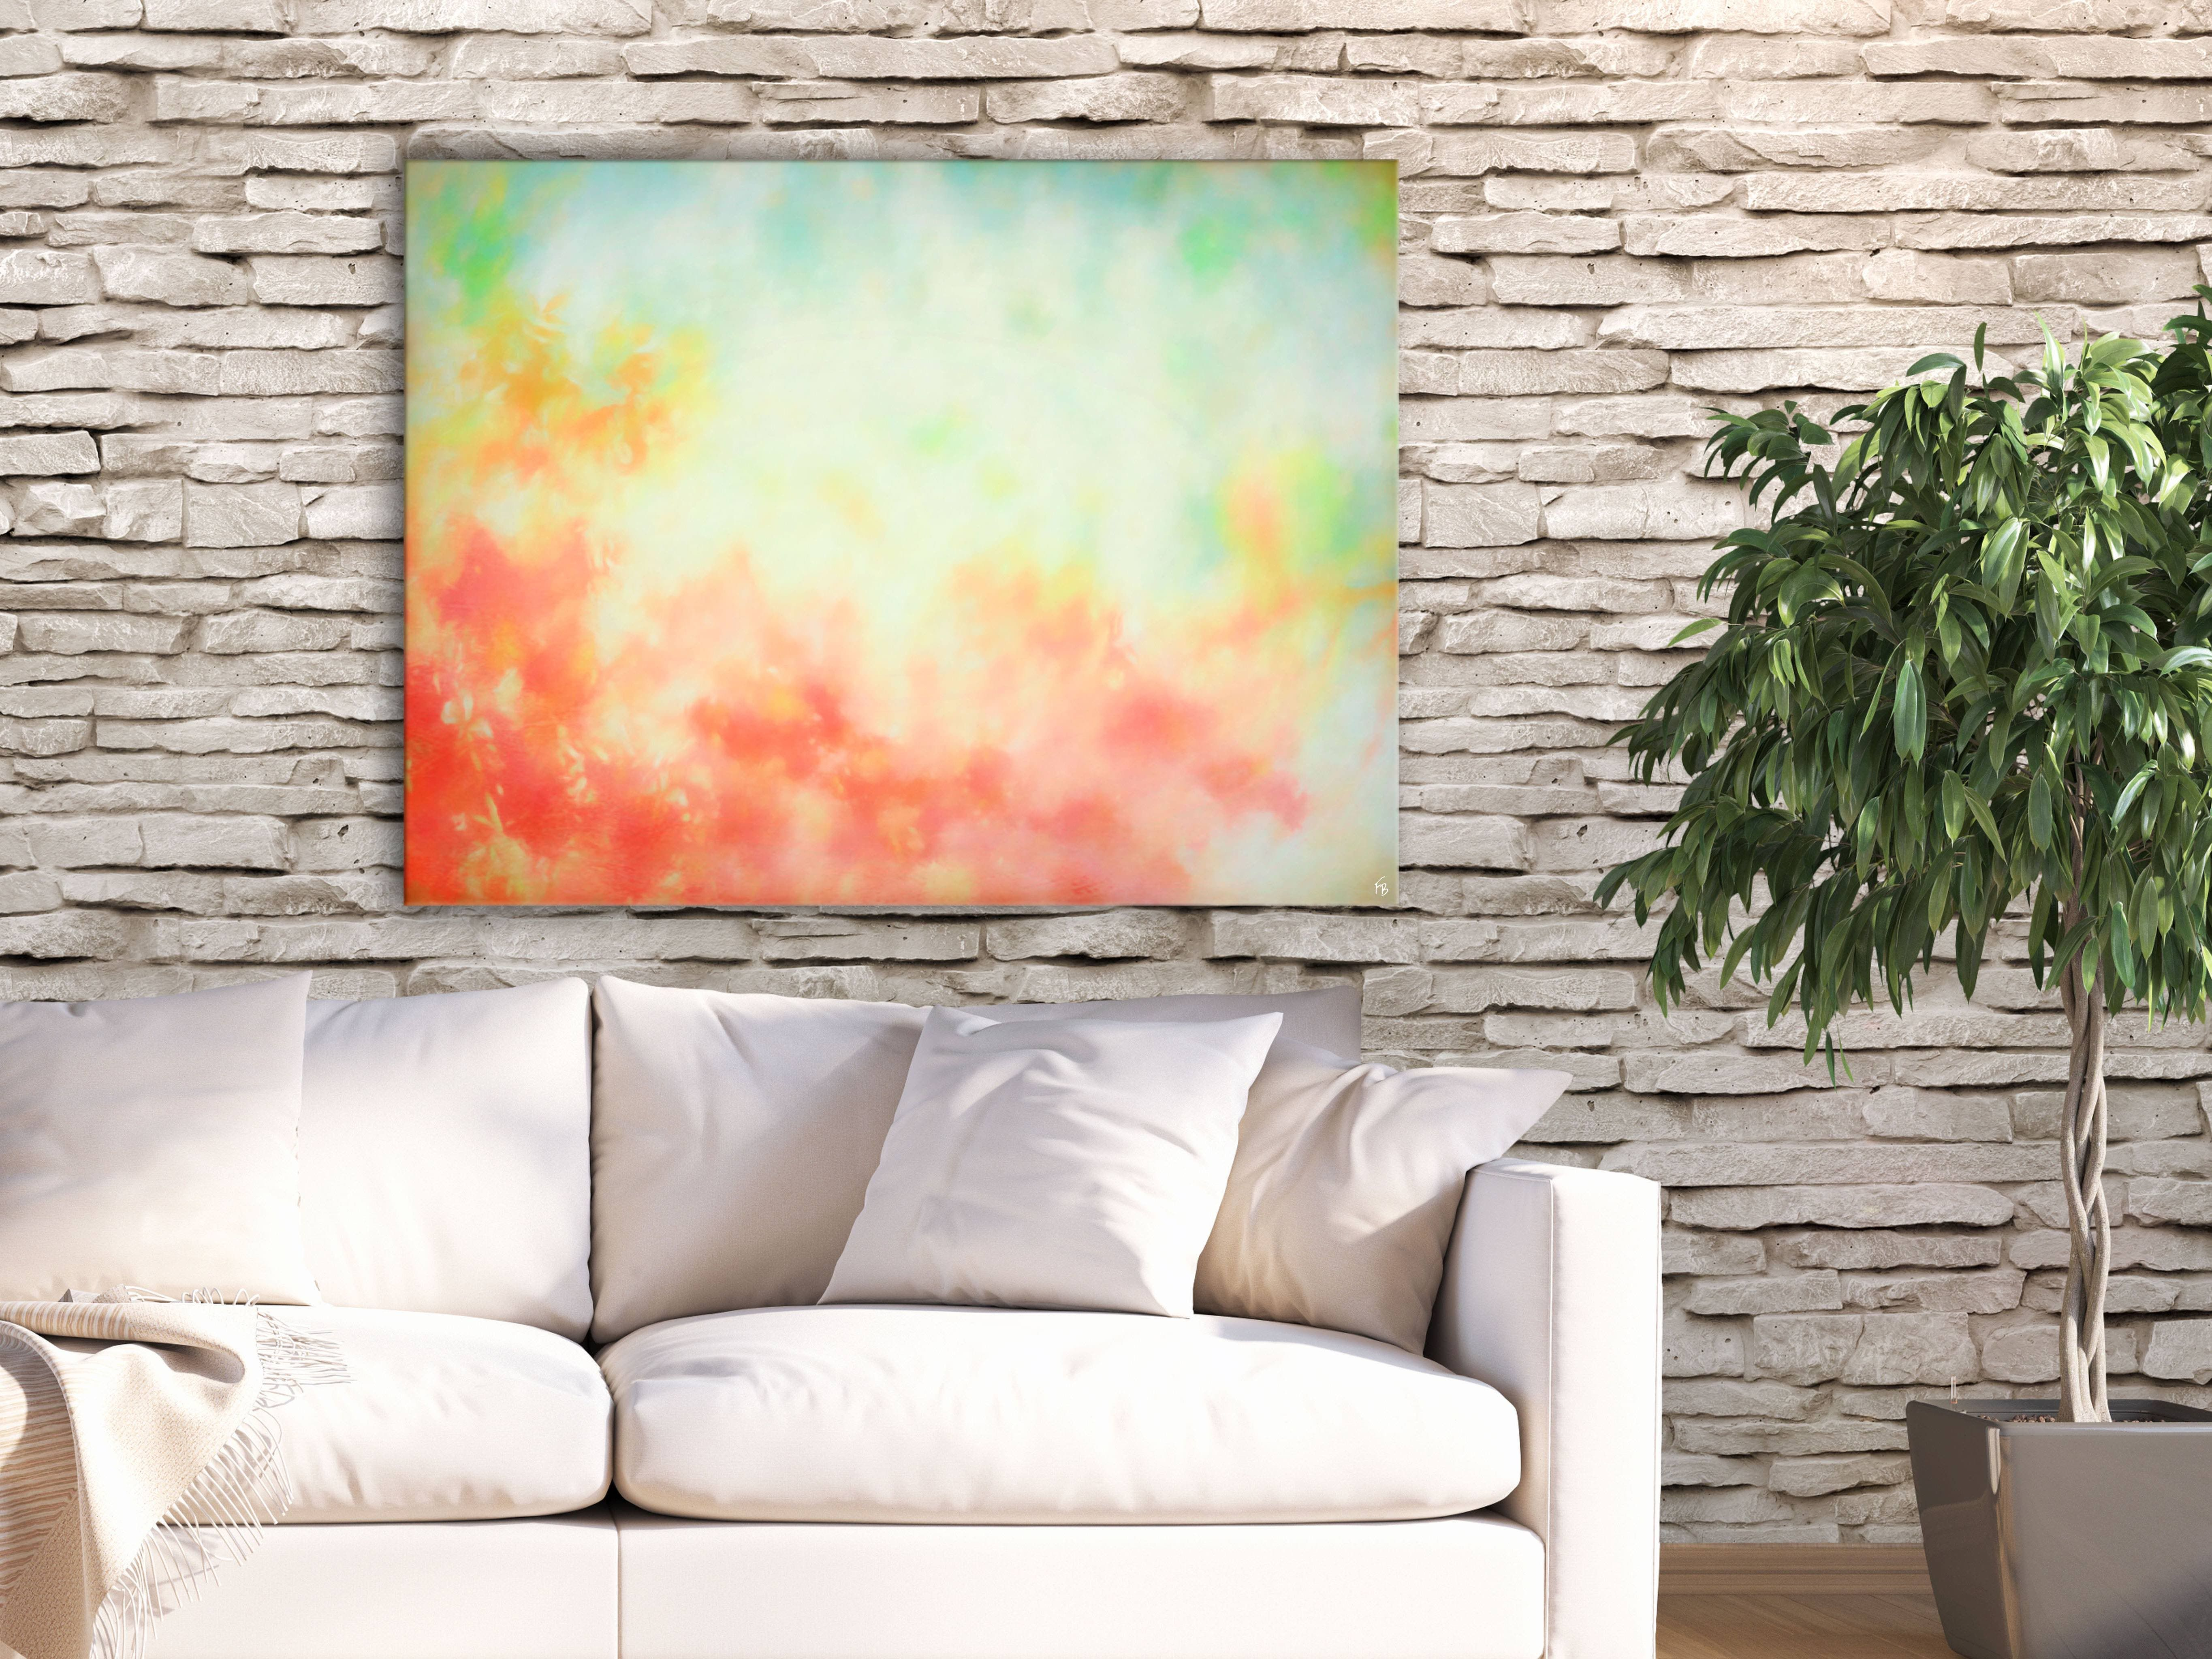 Bring a warm cozy feeling to your dining room red large painting by frabor art